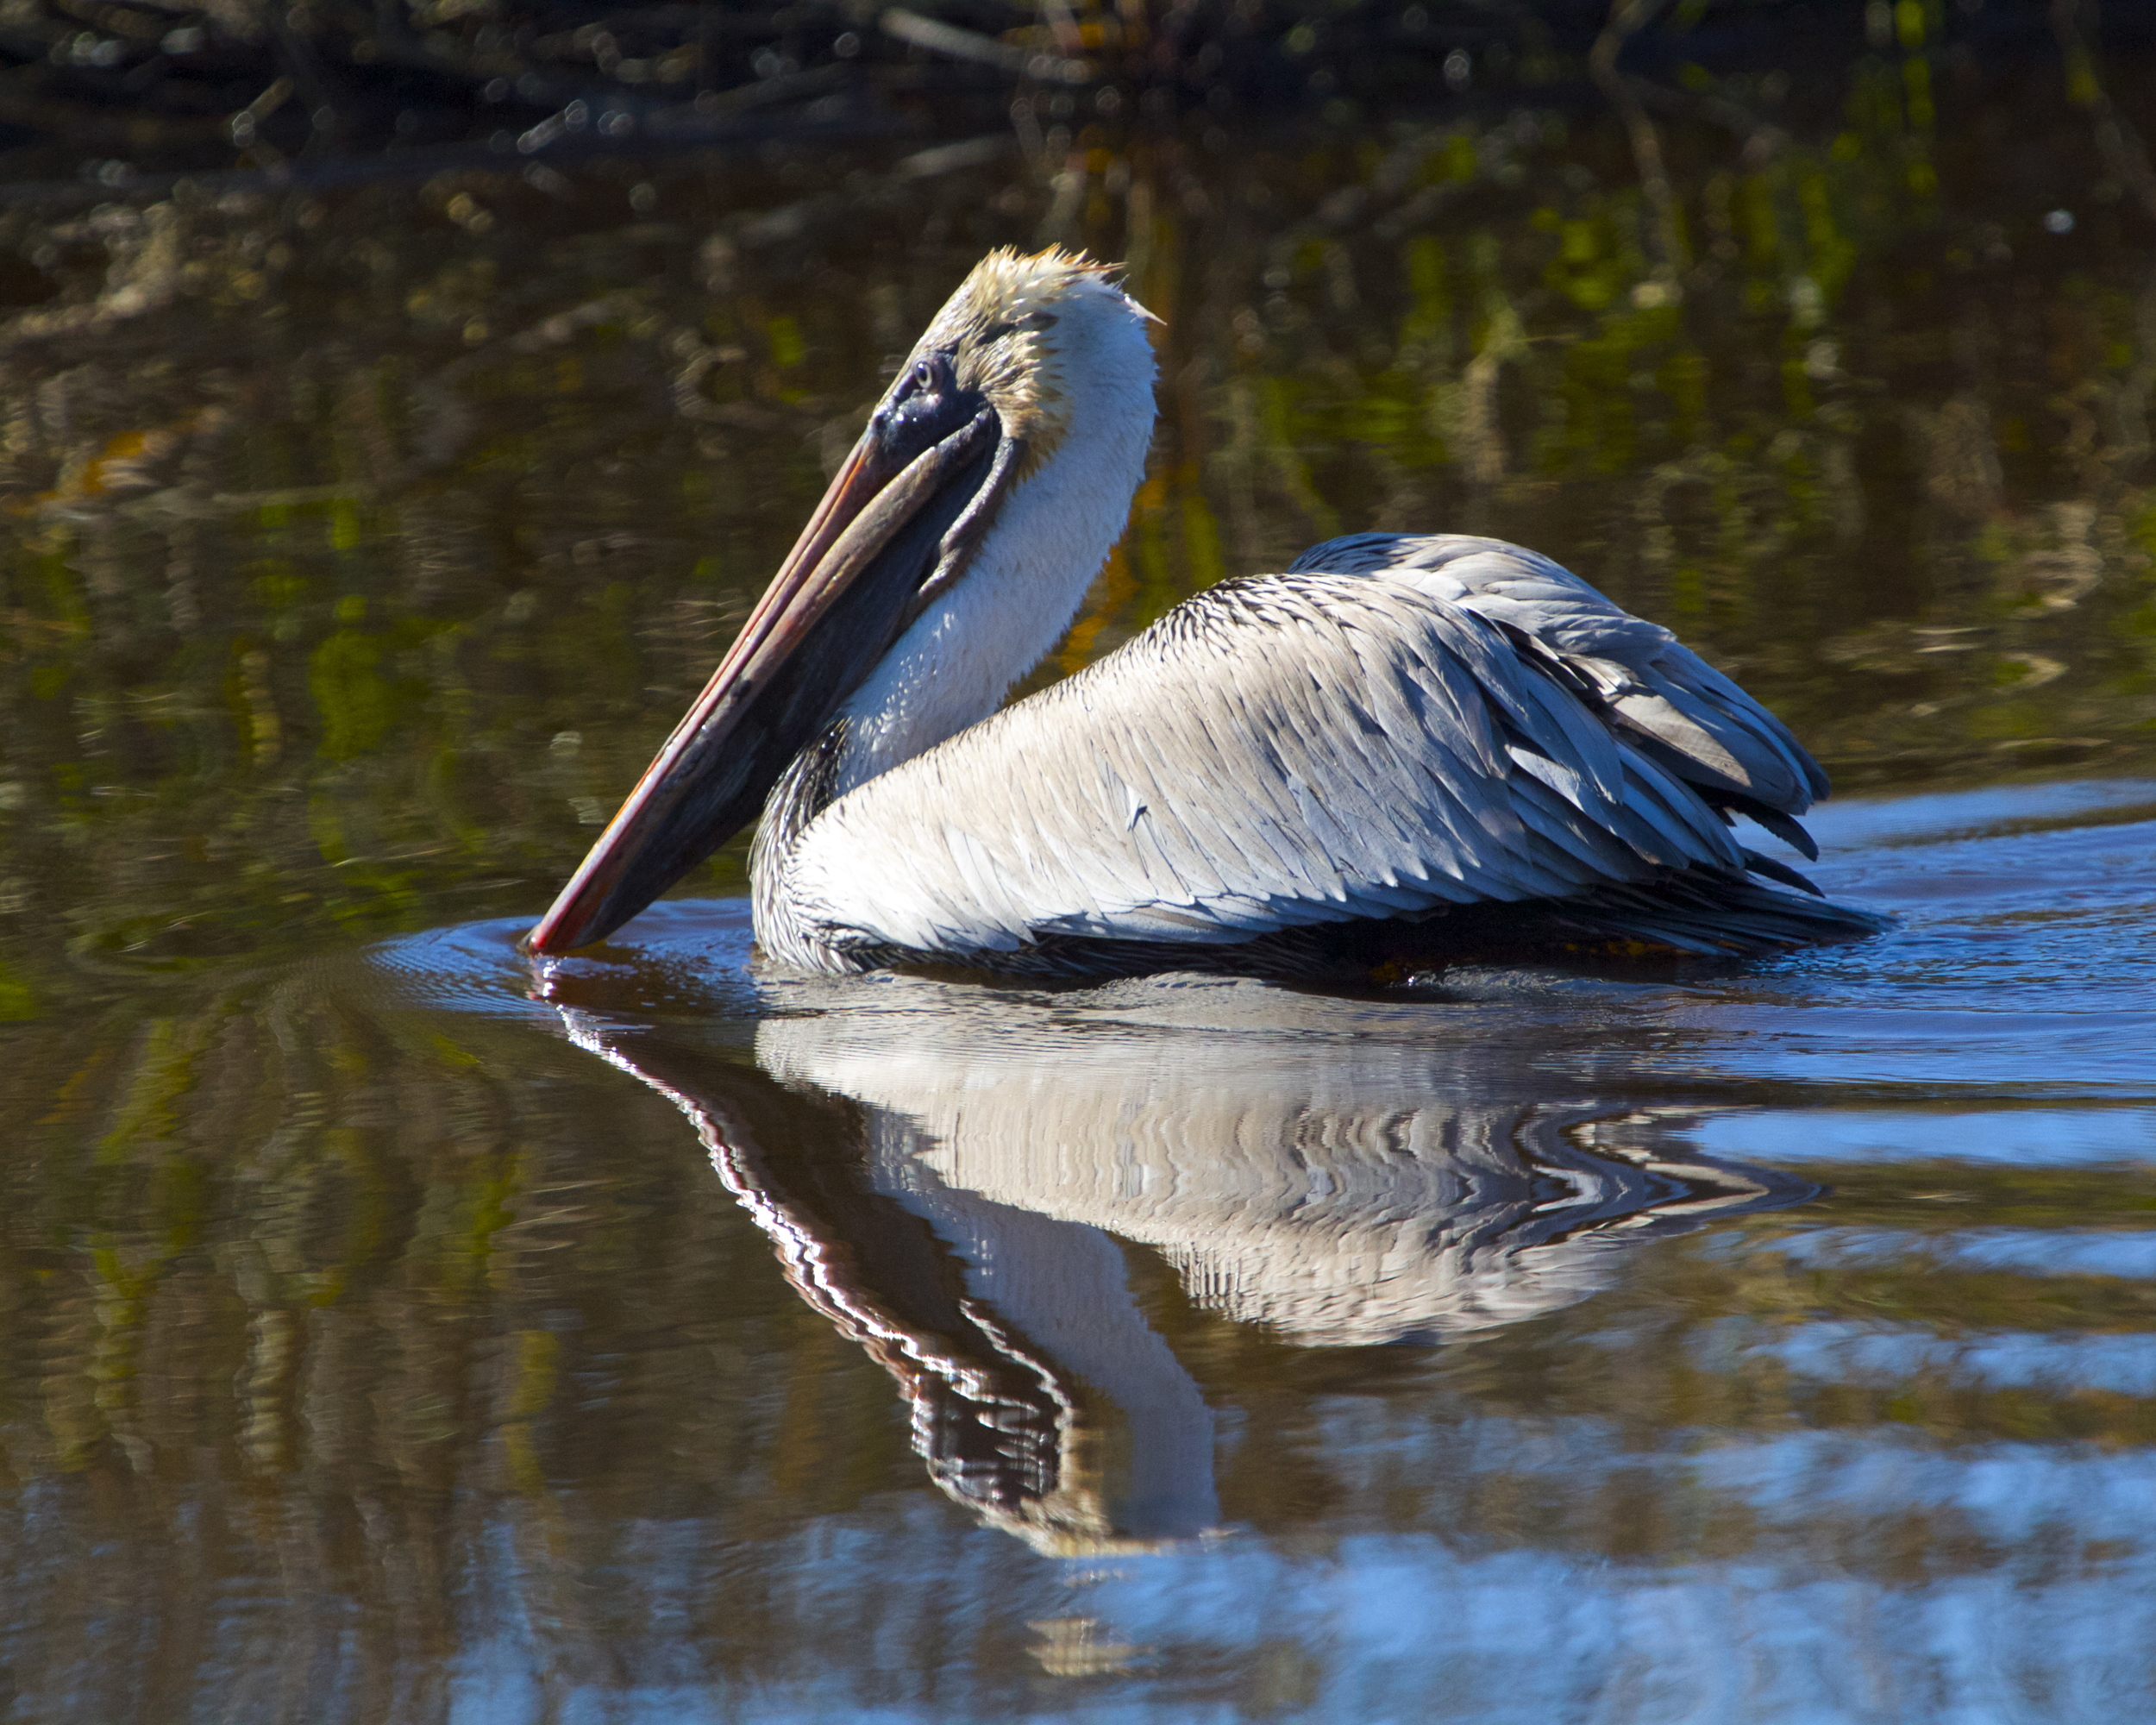 The Pelican plops into the river and swims away rejected..